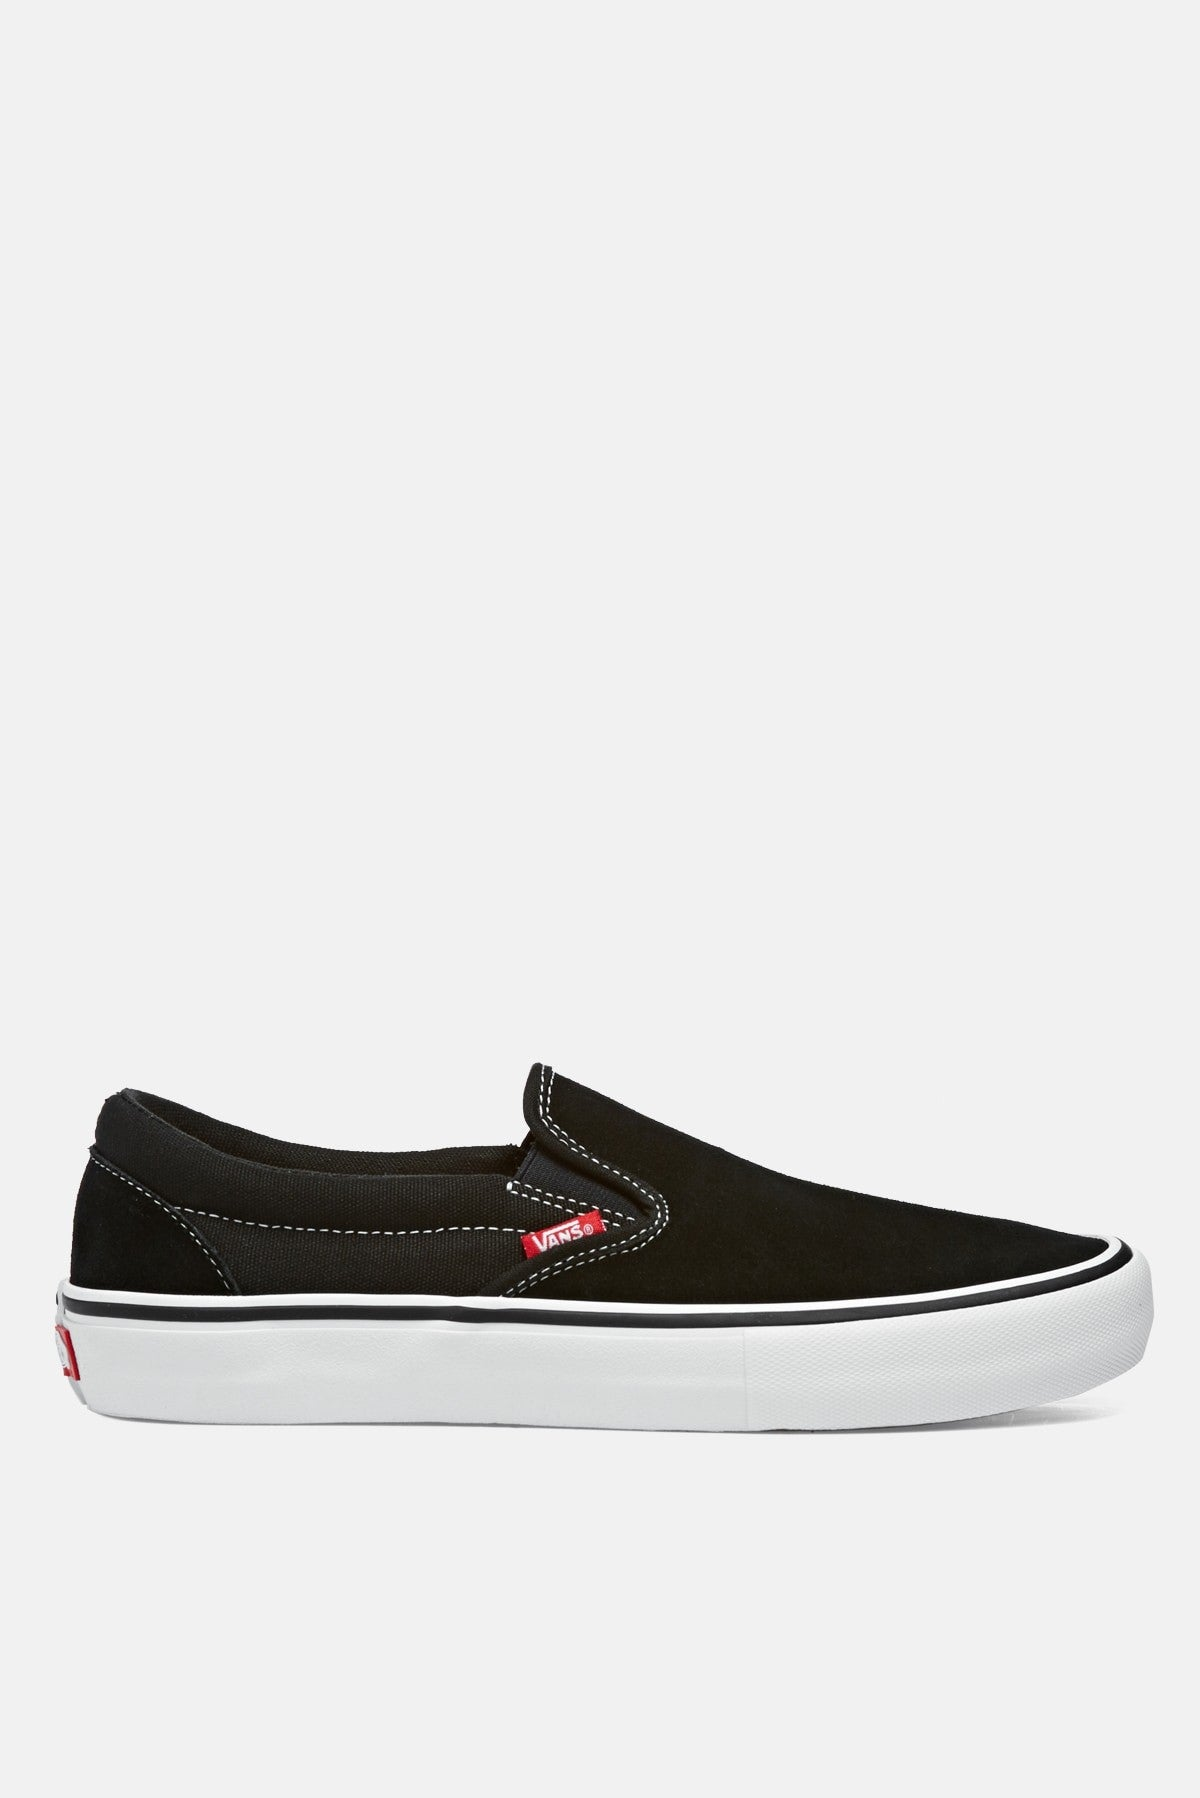 Vans Classic Schlüpfschuhe available from Priory